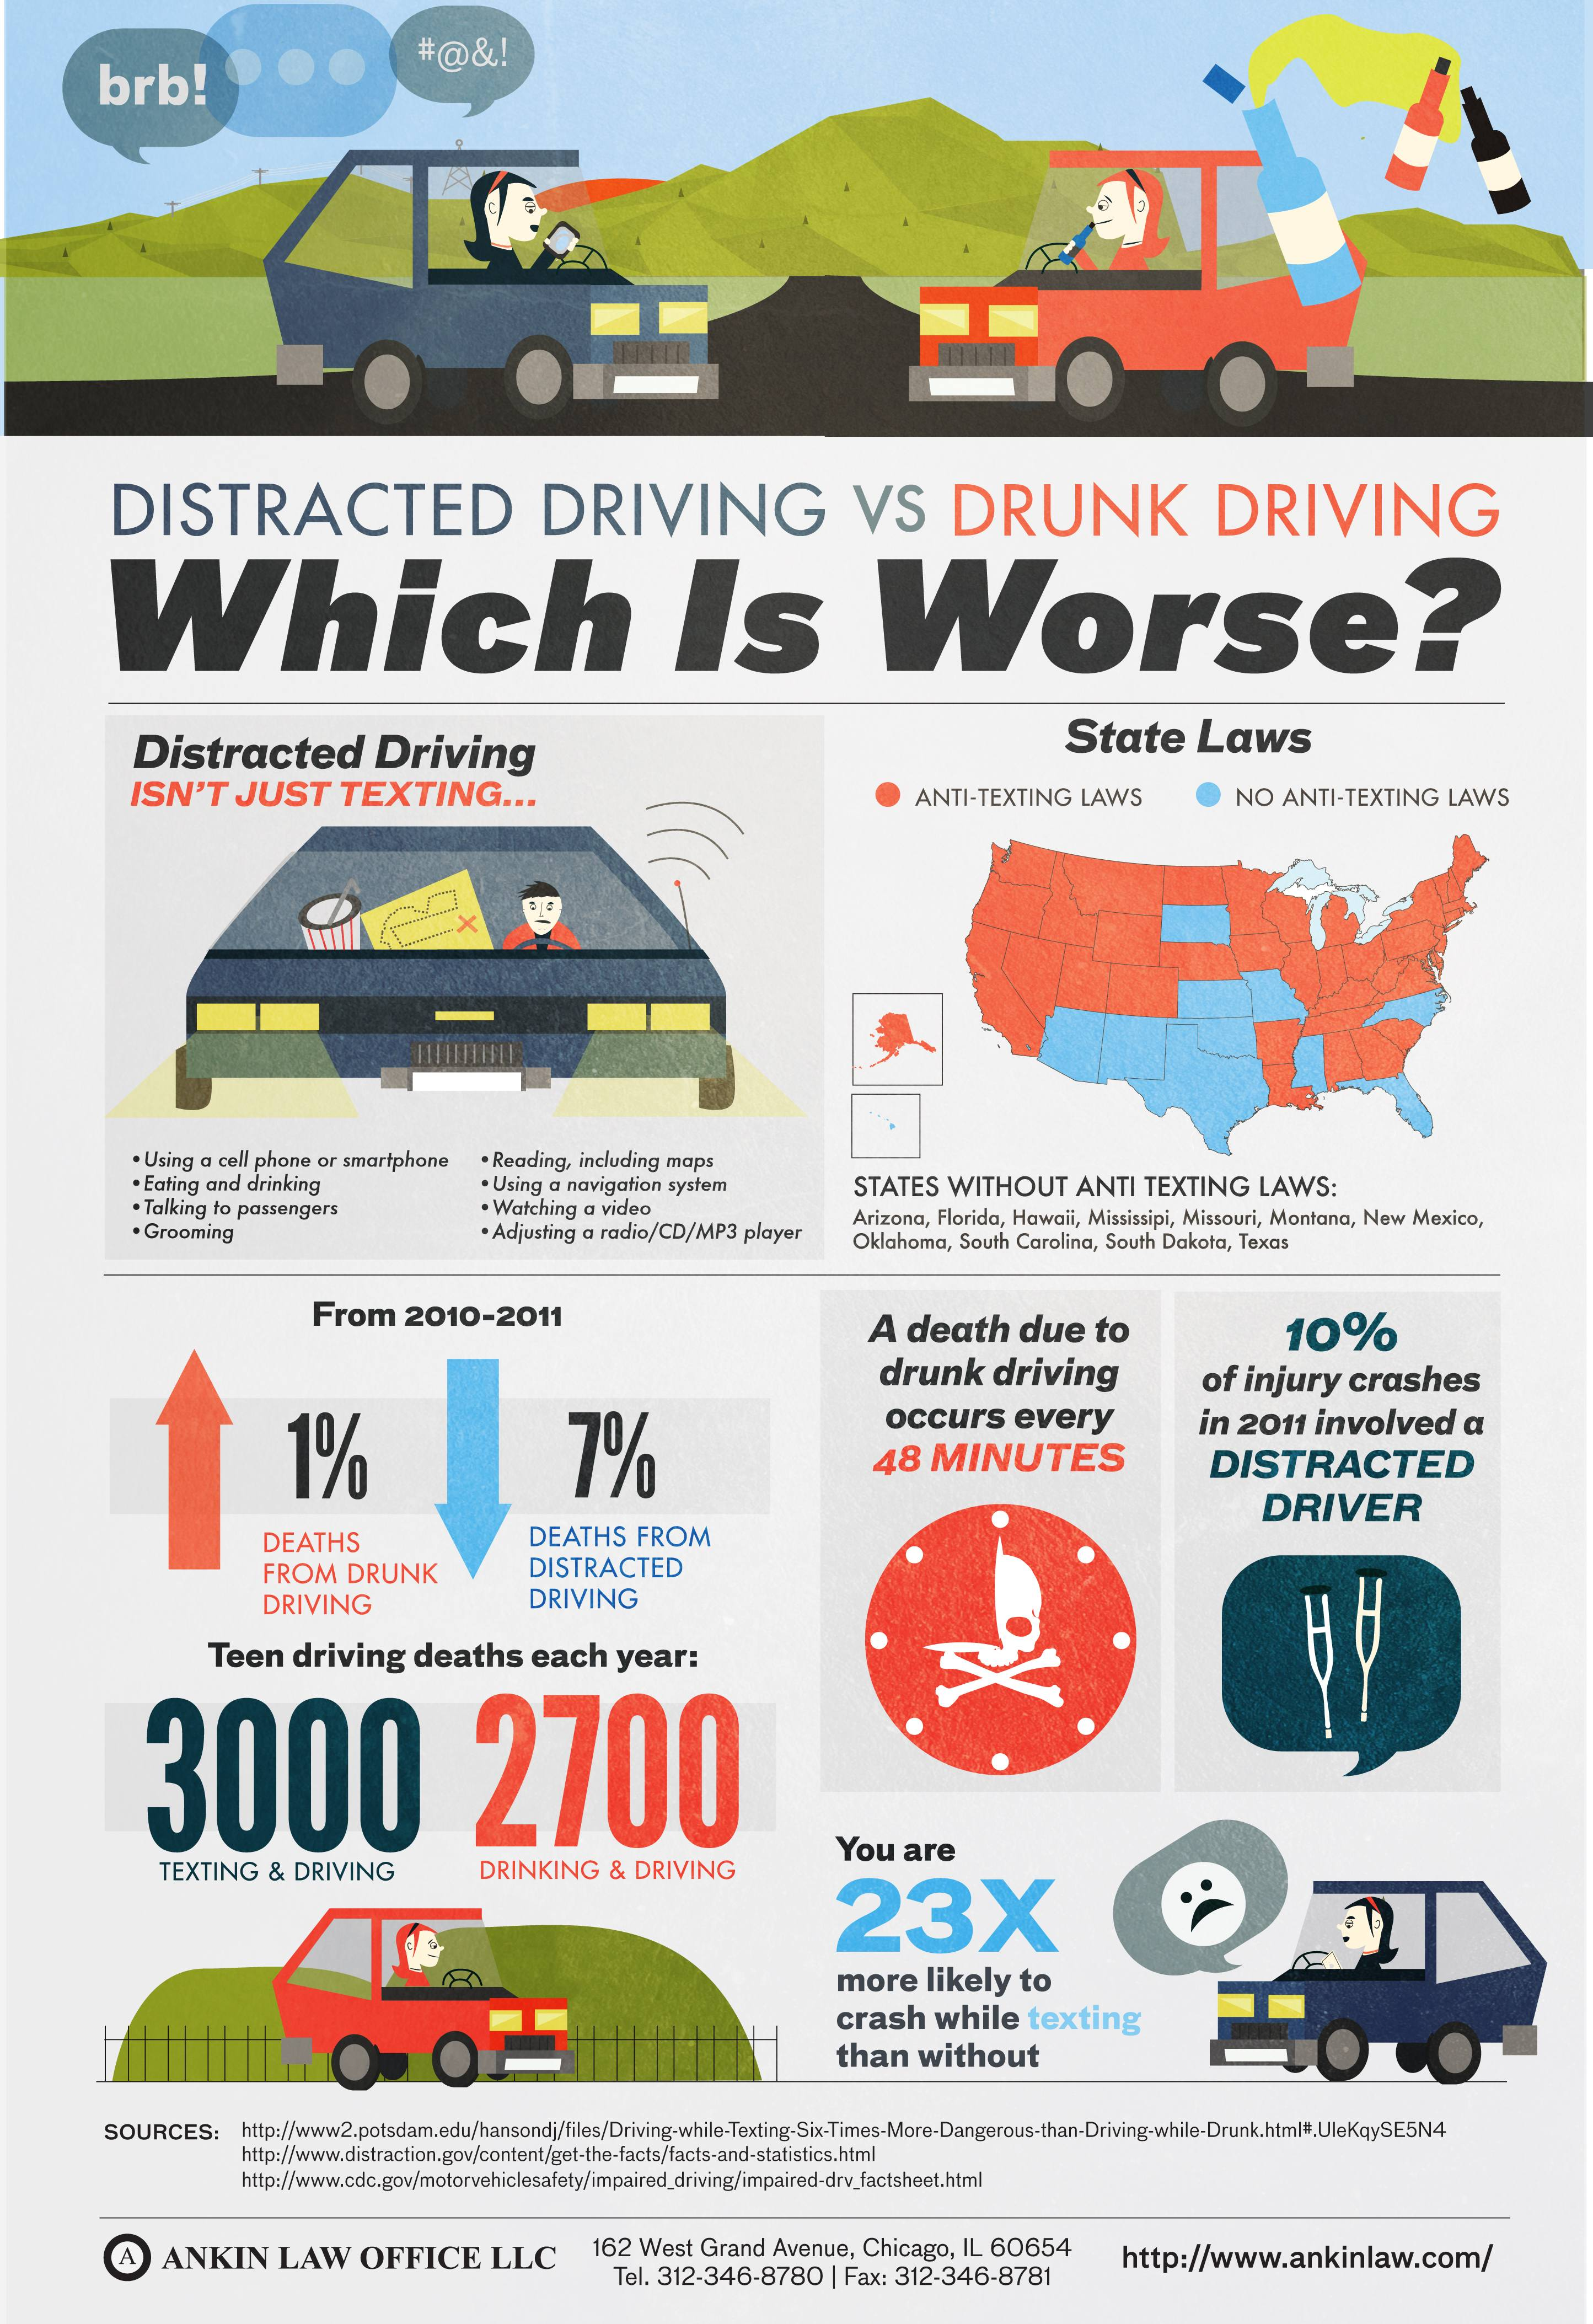 texting and driving compared to drinking and driving